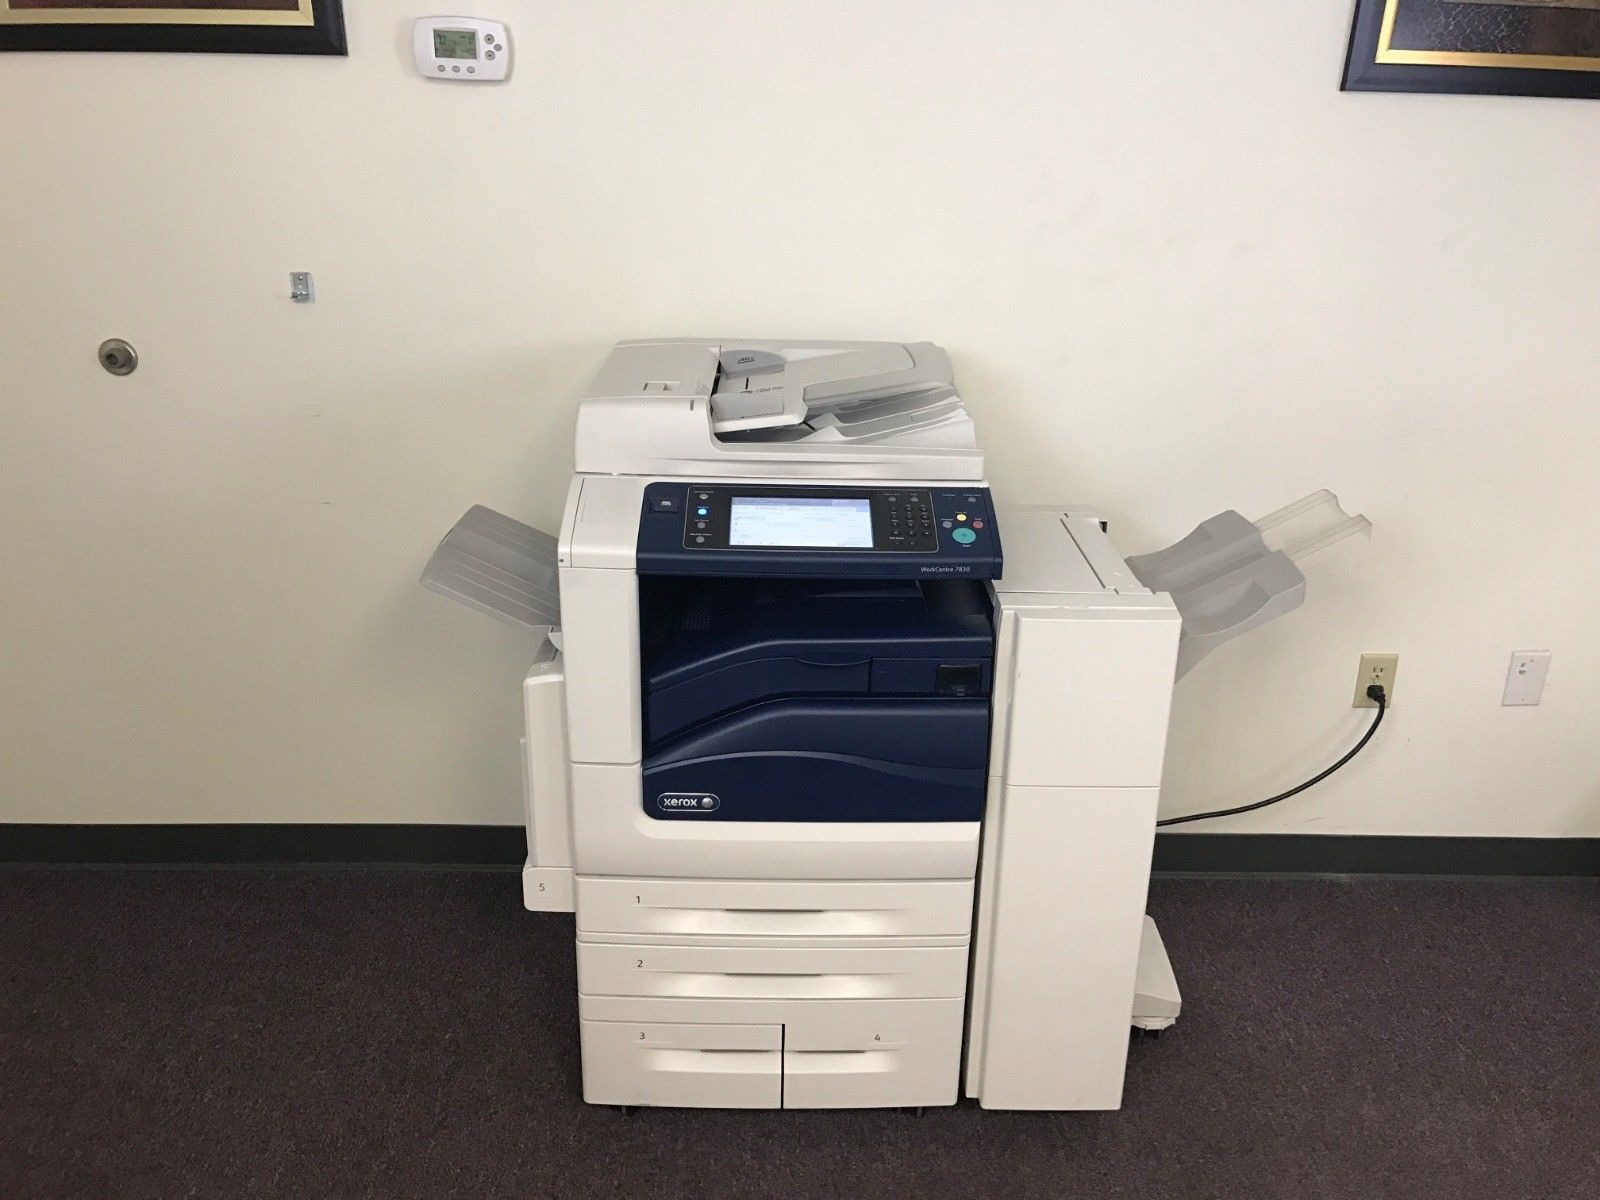 Photocopiers, Photocopier Leasing, Buy a Photocopier Which photocopier to buy